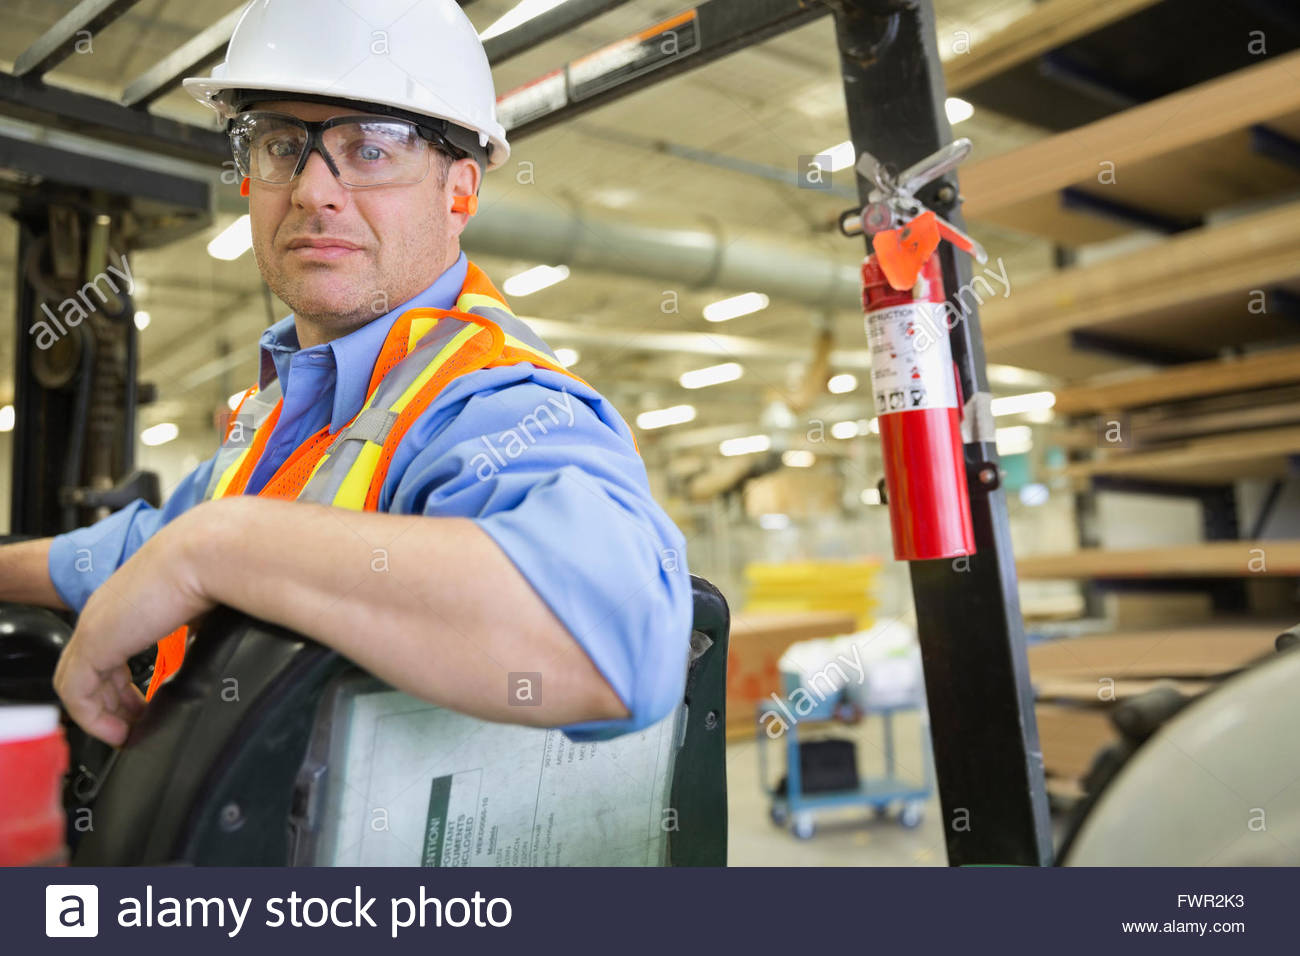 Manual worker driving forklift in industry - Stock Image